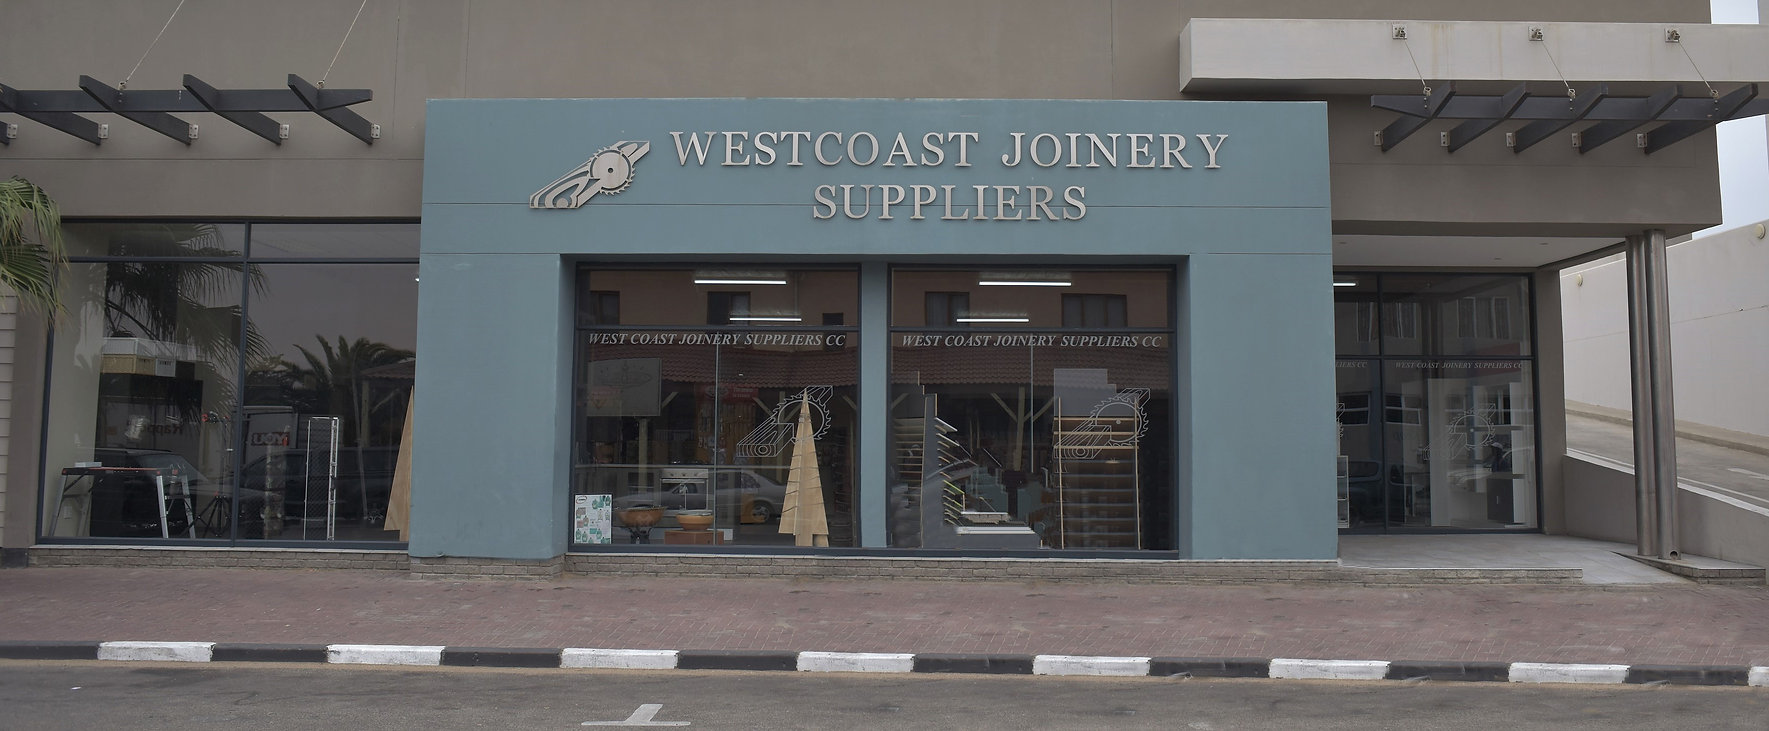 West Coast Joinery Suppliers